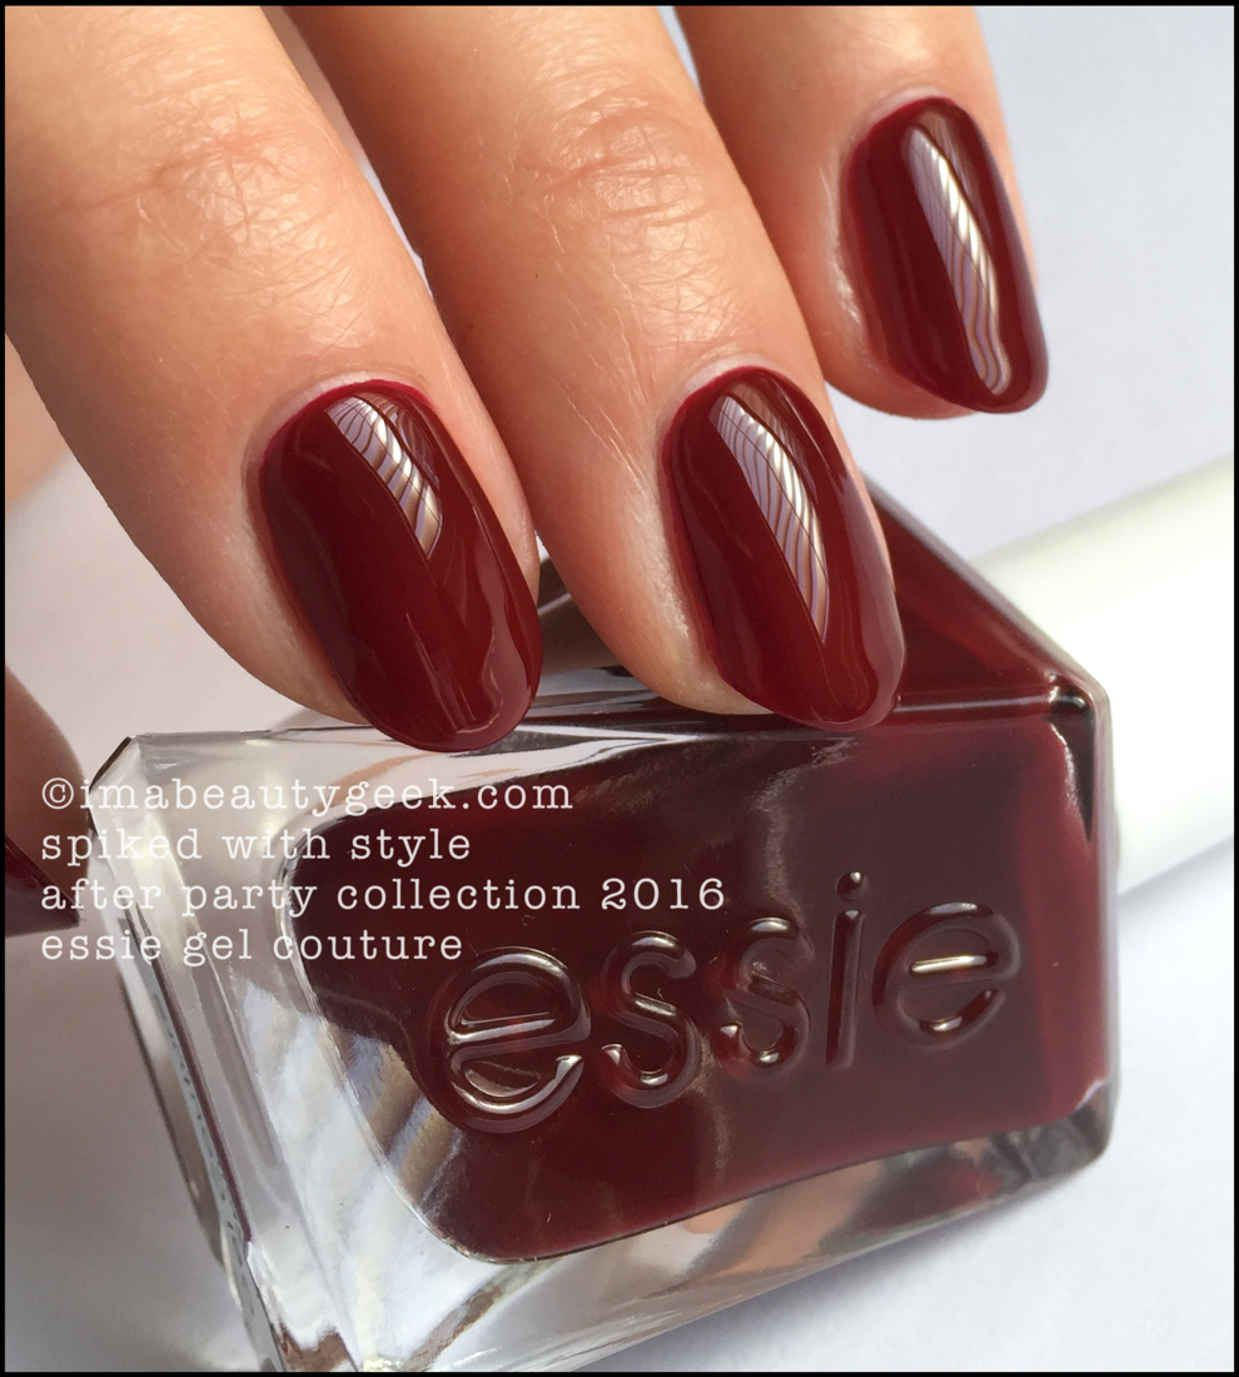 Essie Spiked with Style